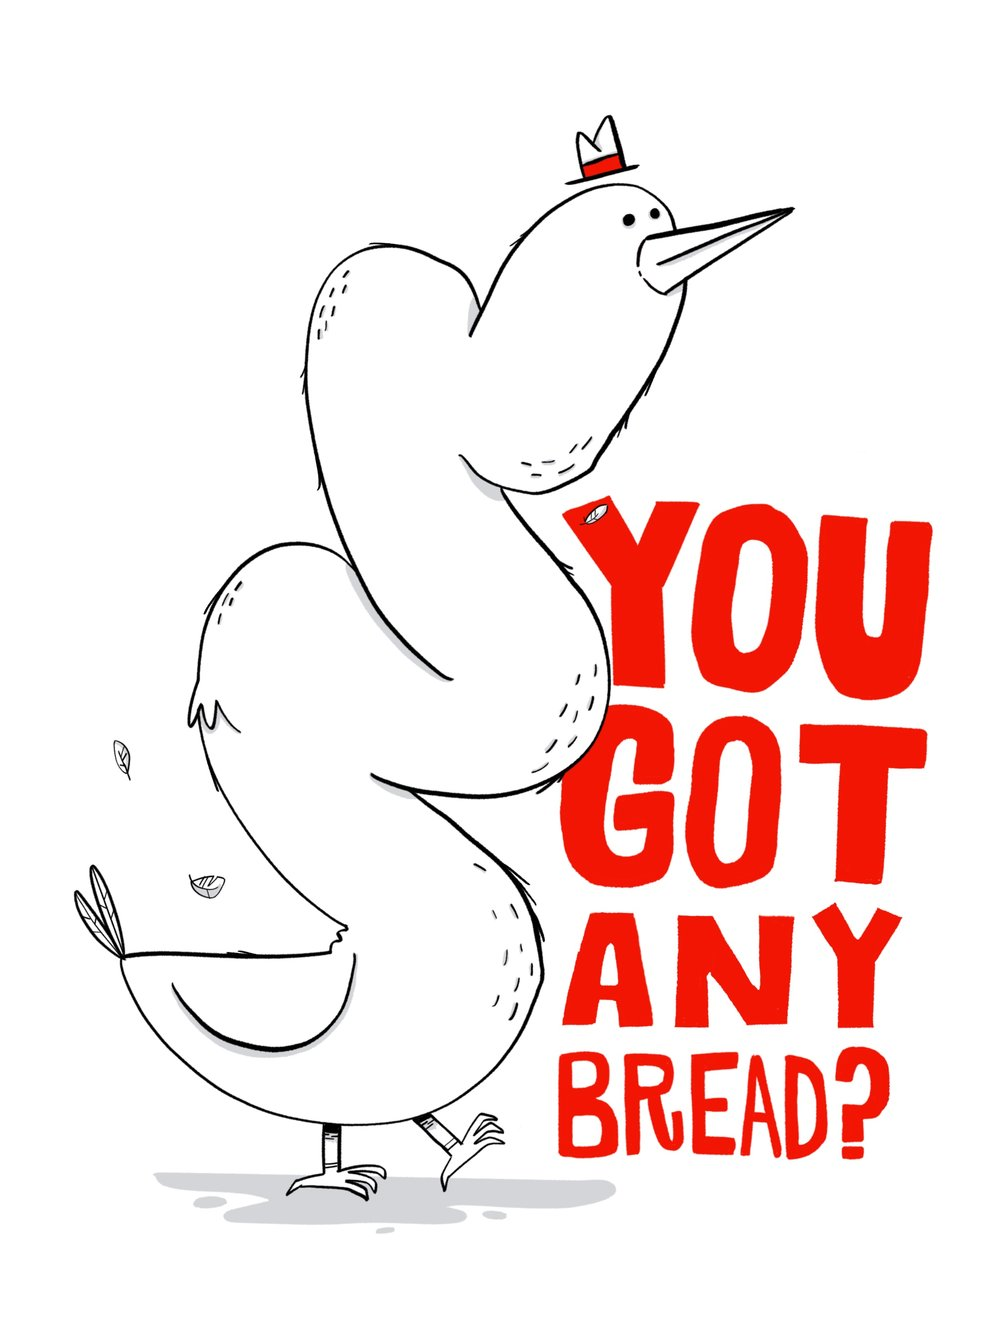 Bird_Bread.jpg